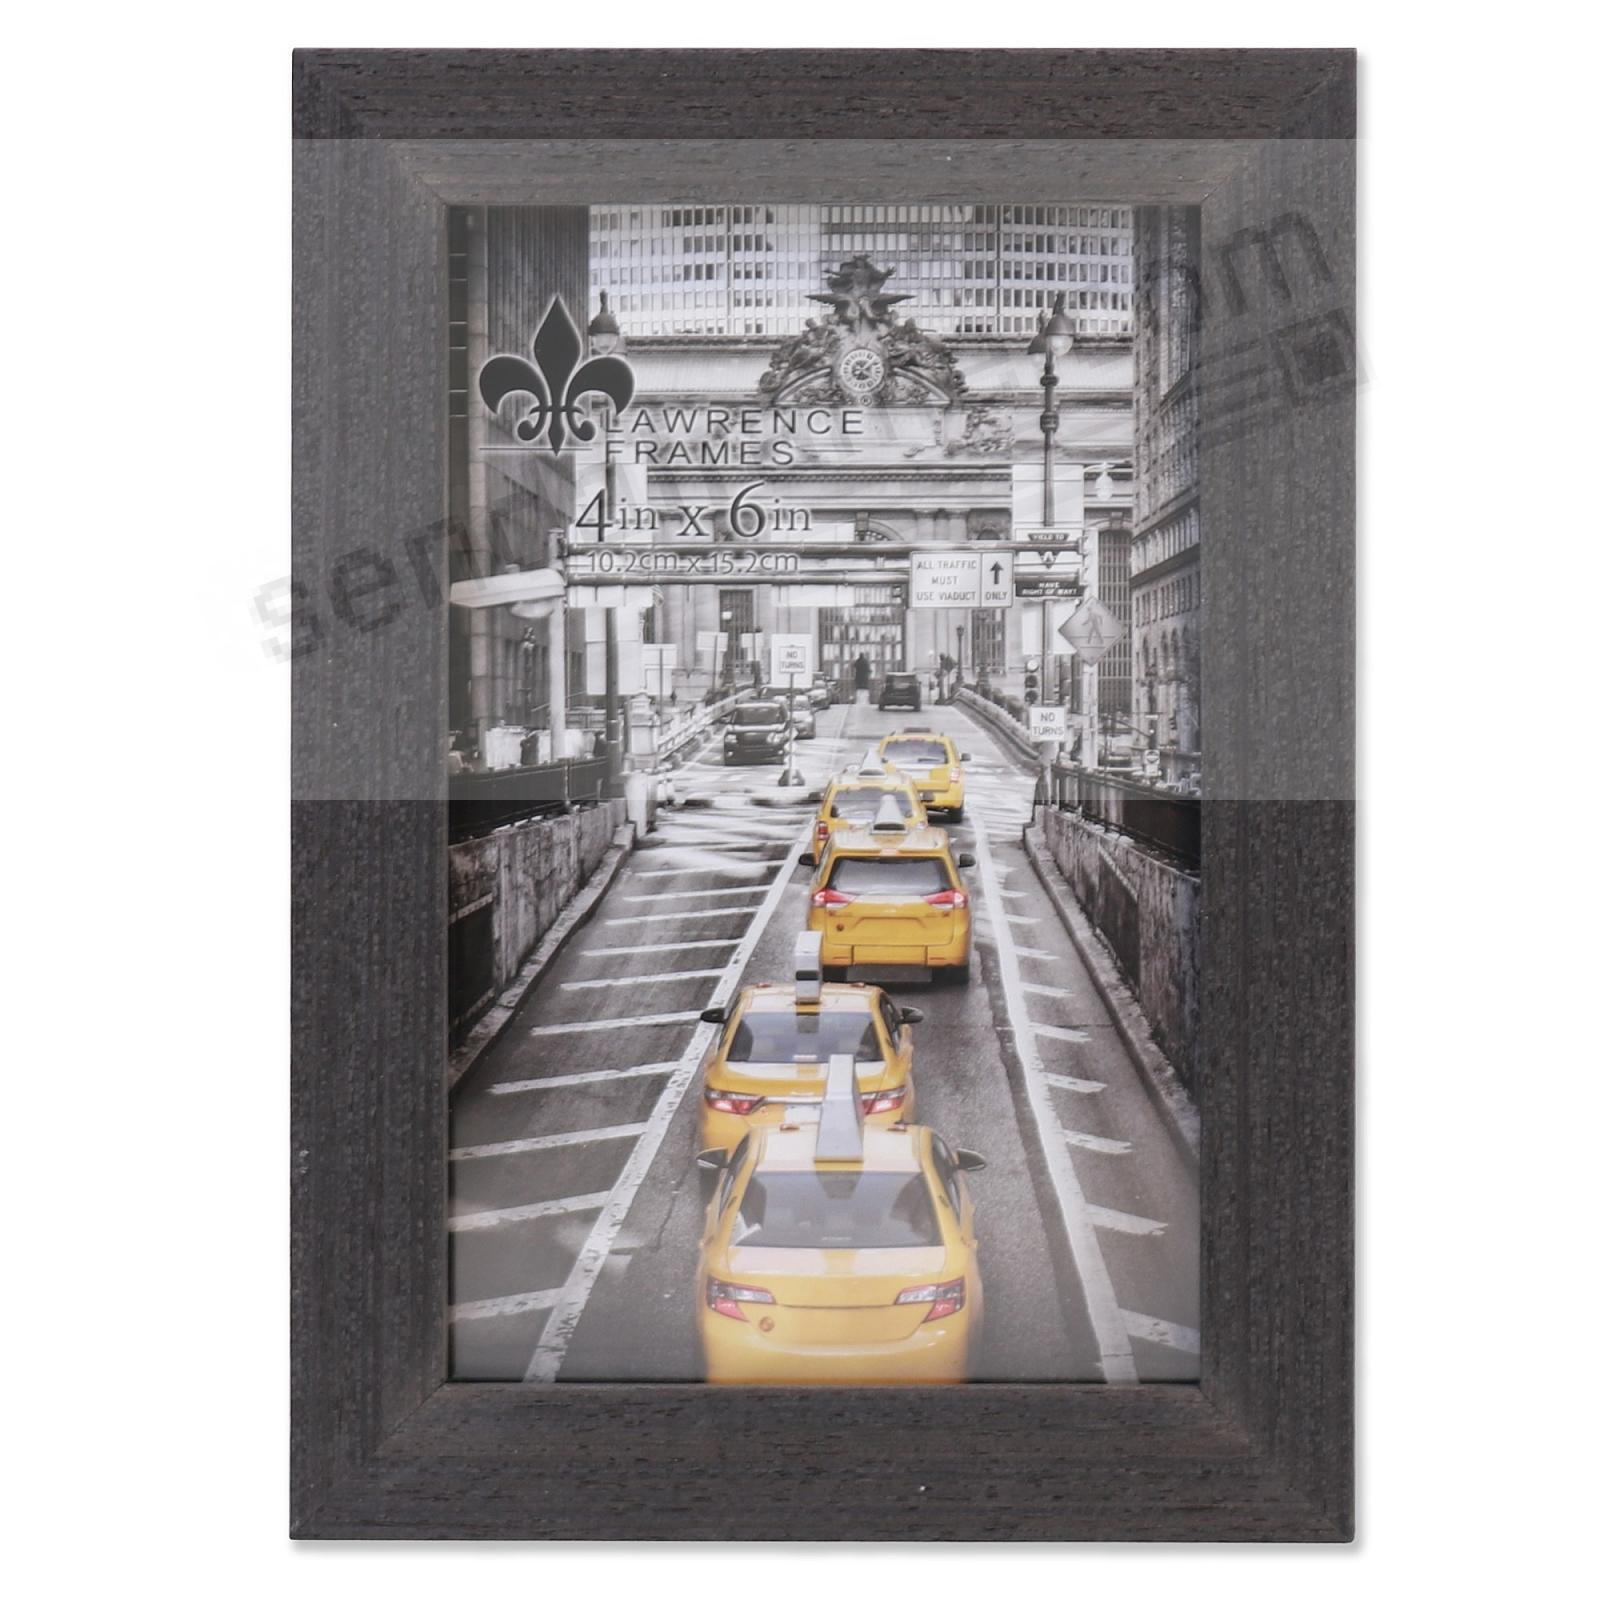 SOHO Black 4x6 Frame by Lawrence®